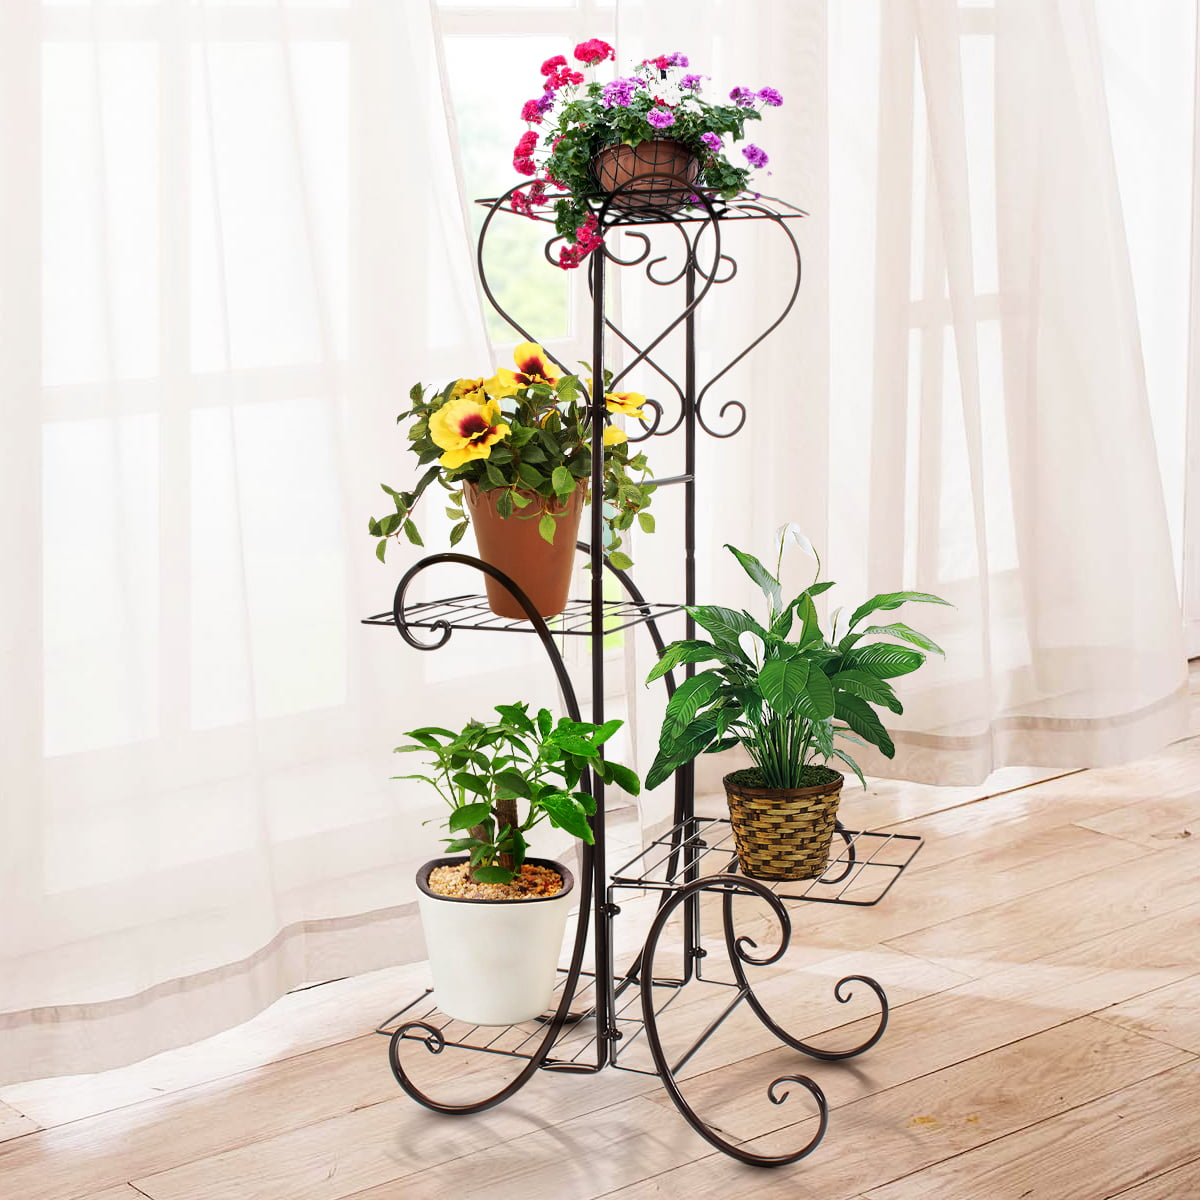 Plant Stand,2 Tier Metal Outdoor /& Indoor Potted Flower Stand Display Shelf for Home,Garden,Patio,Plant Lovers